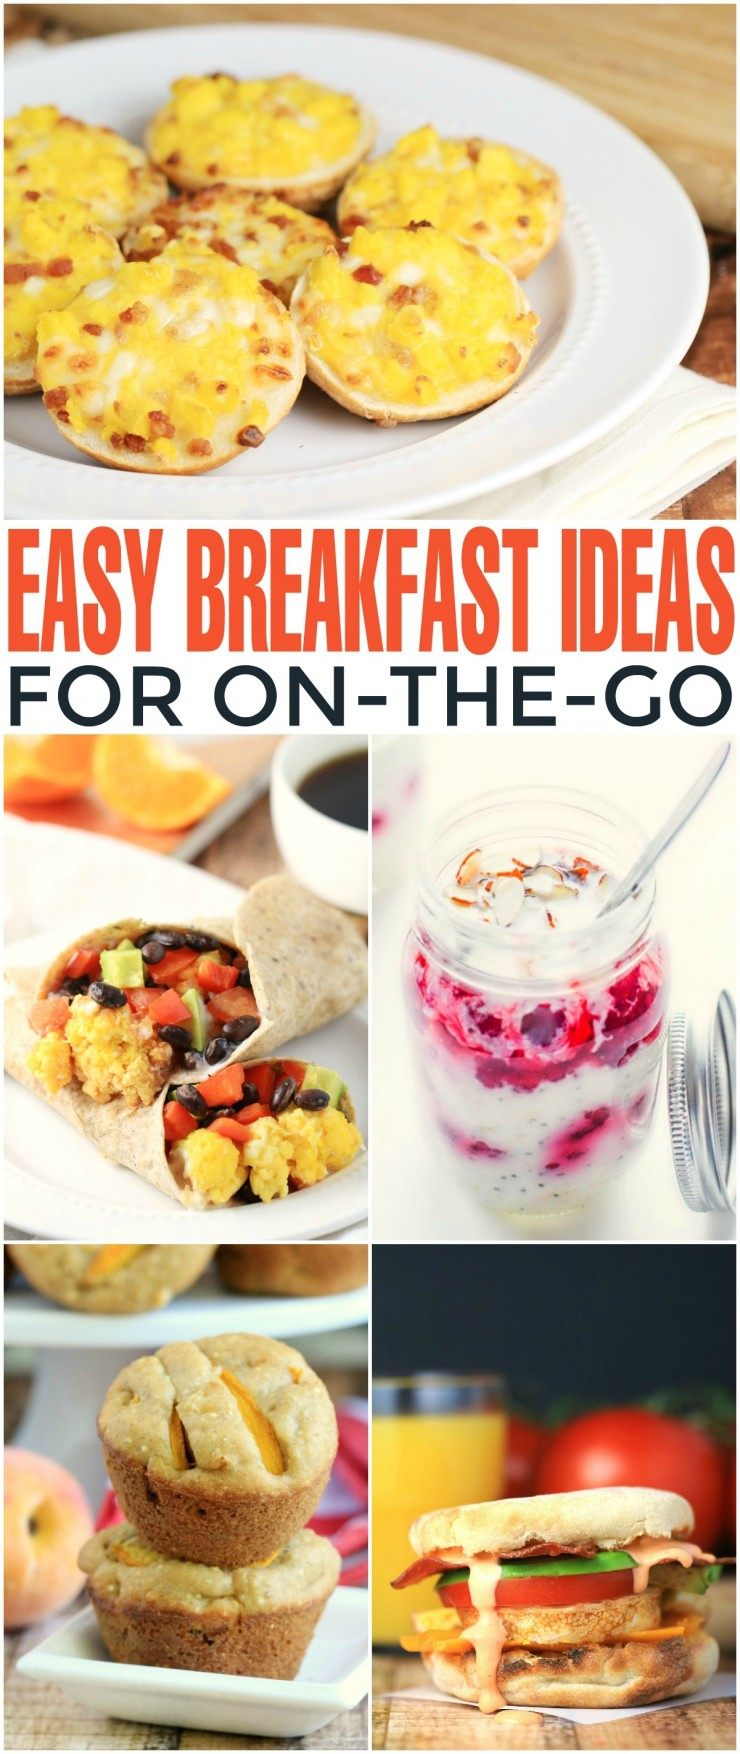 Easy Breakfast Ideas for On-The-Go! Healthy meal ideas no matter how busy your life gets. There is a recipe for everyone in this list!